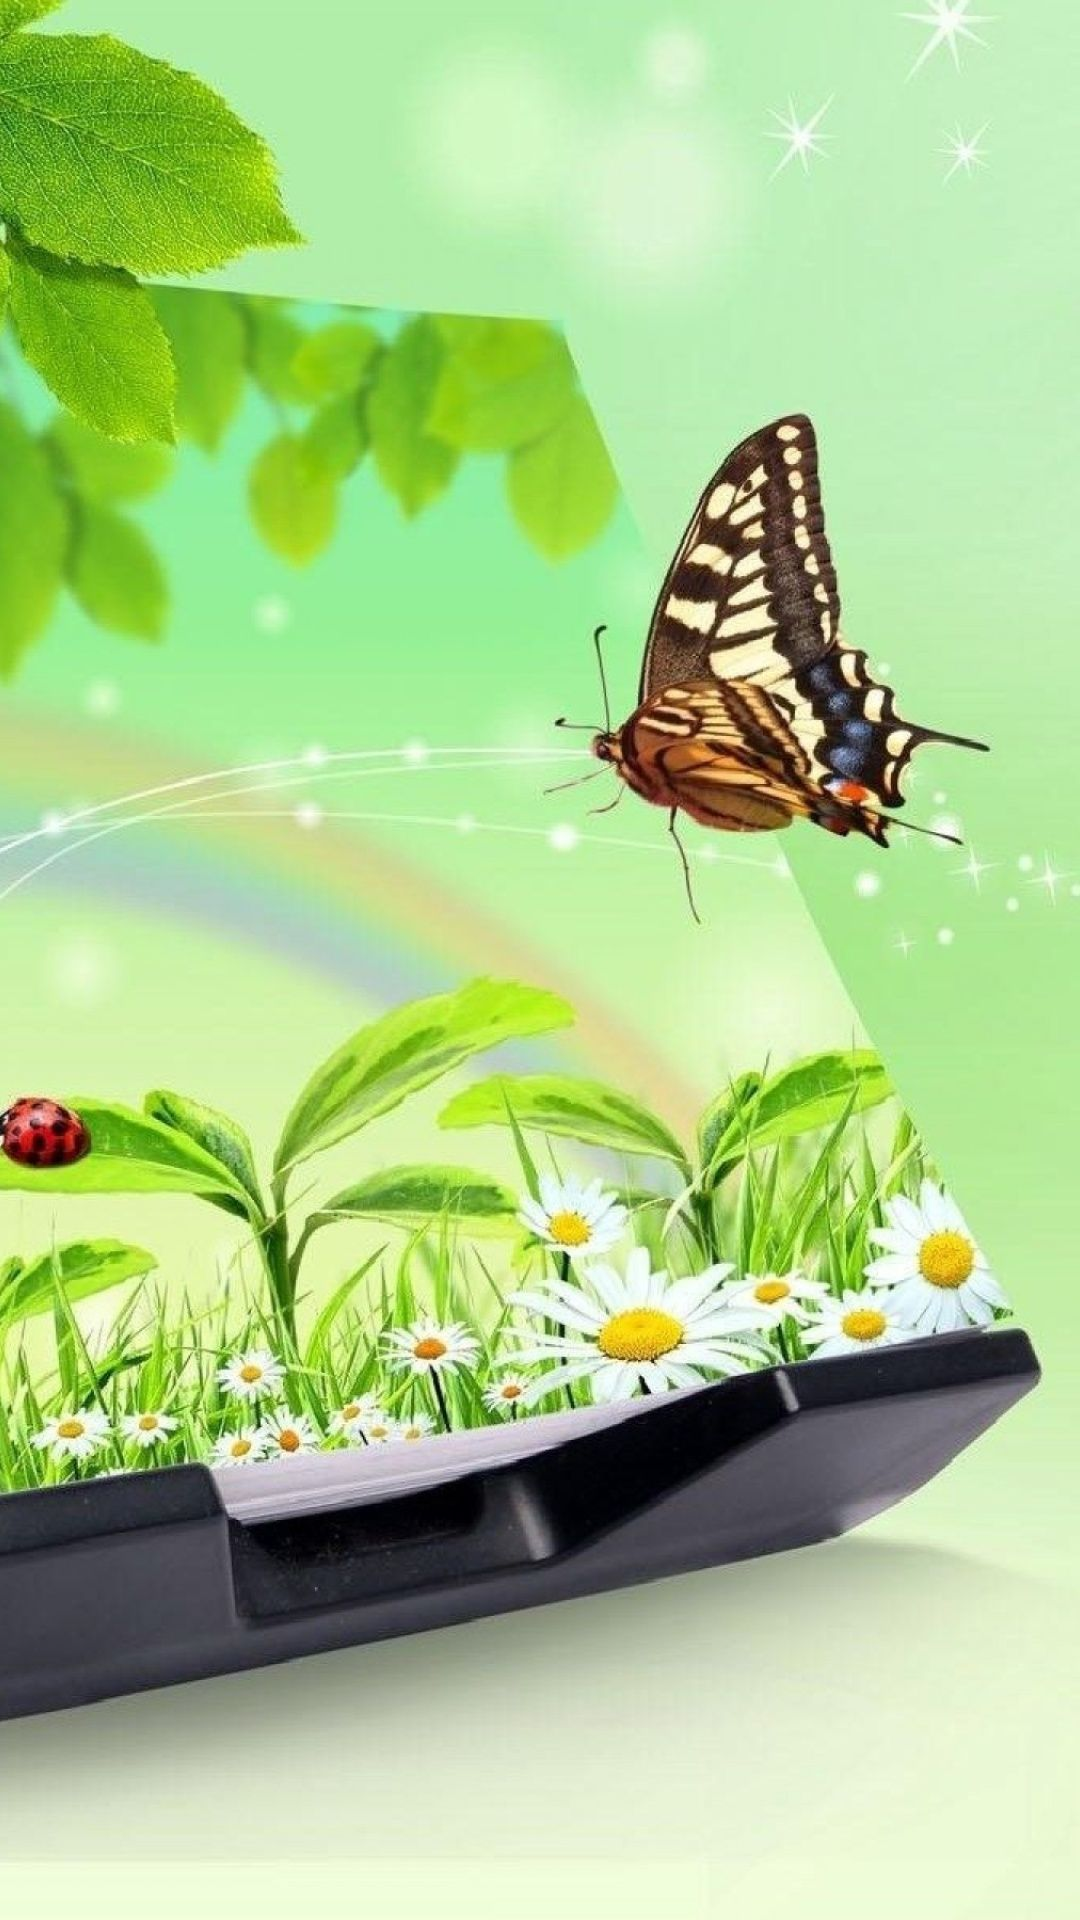 21 3d Butterfly Iphone Wallpapers Wallpaperboat